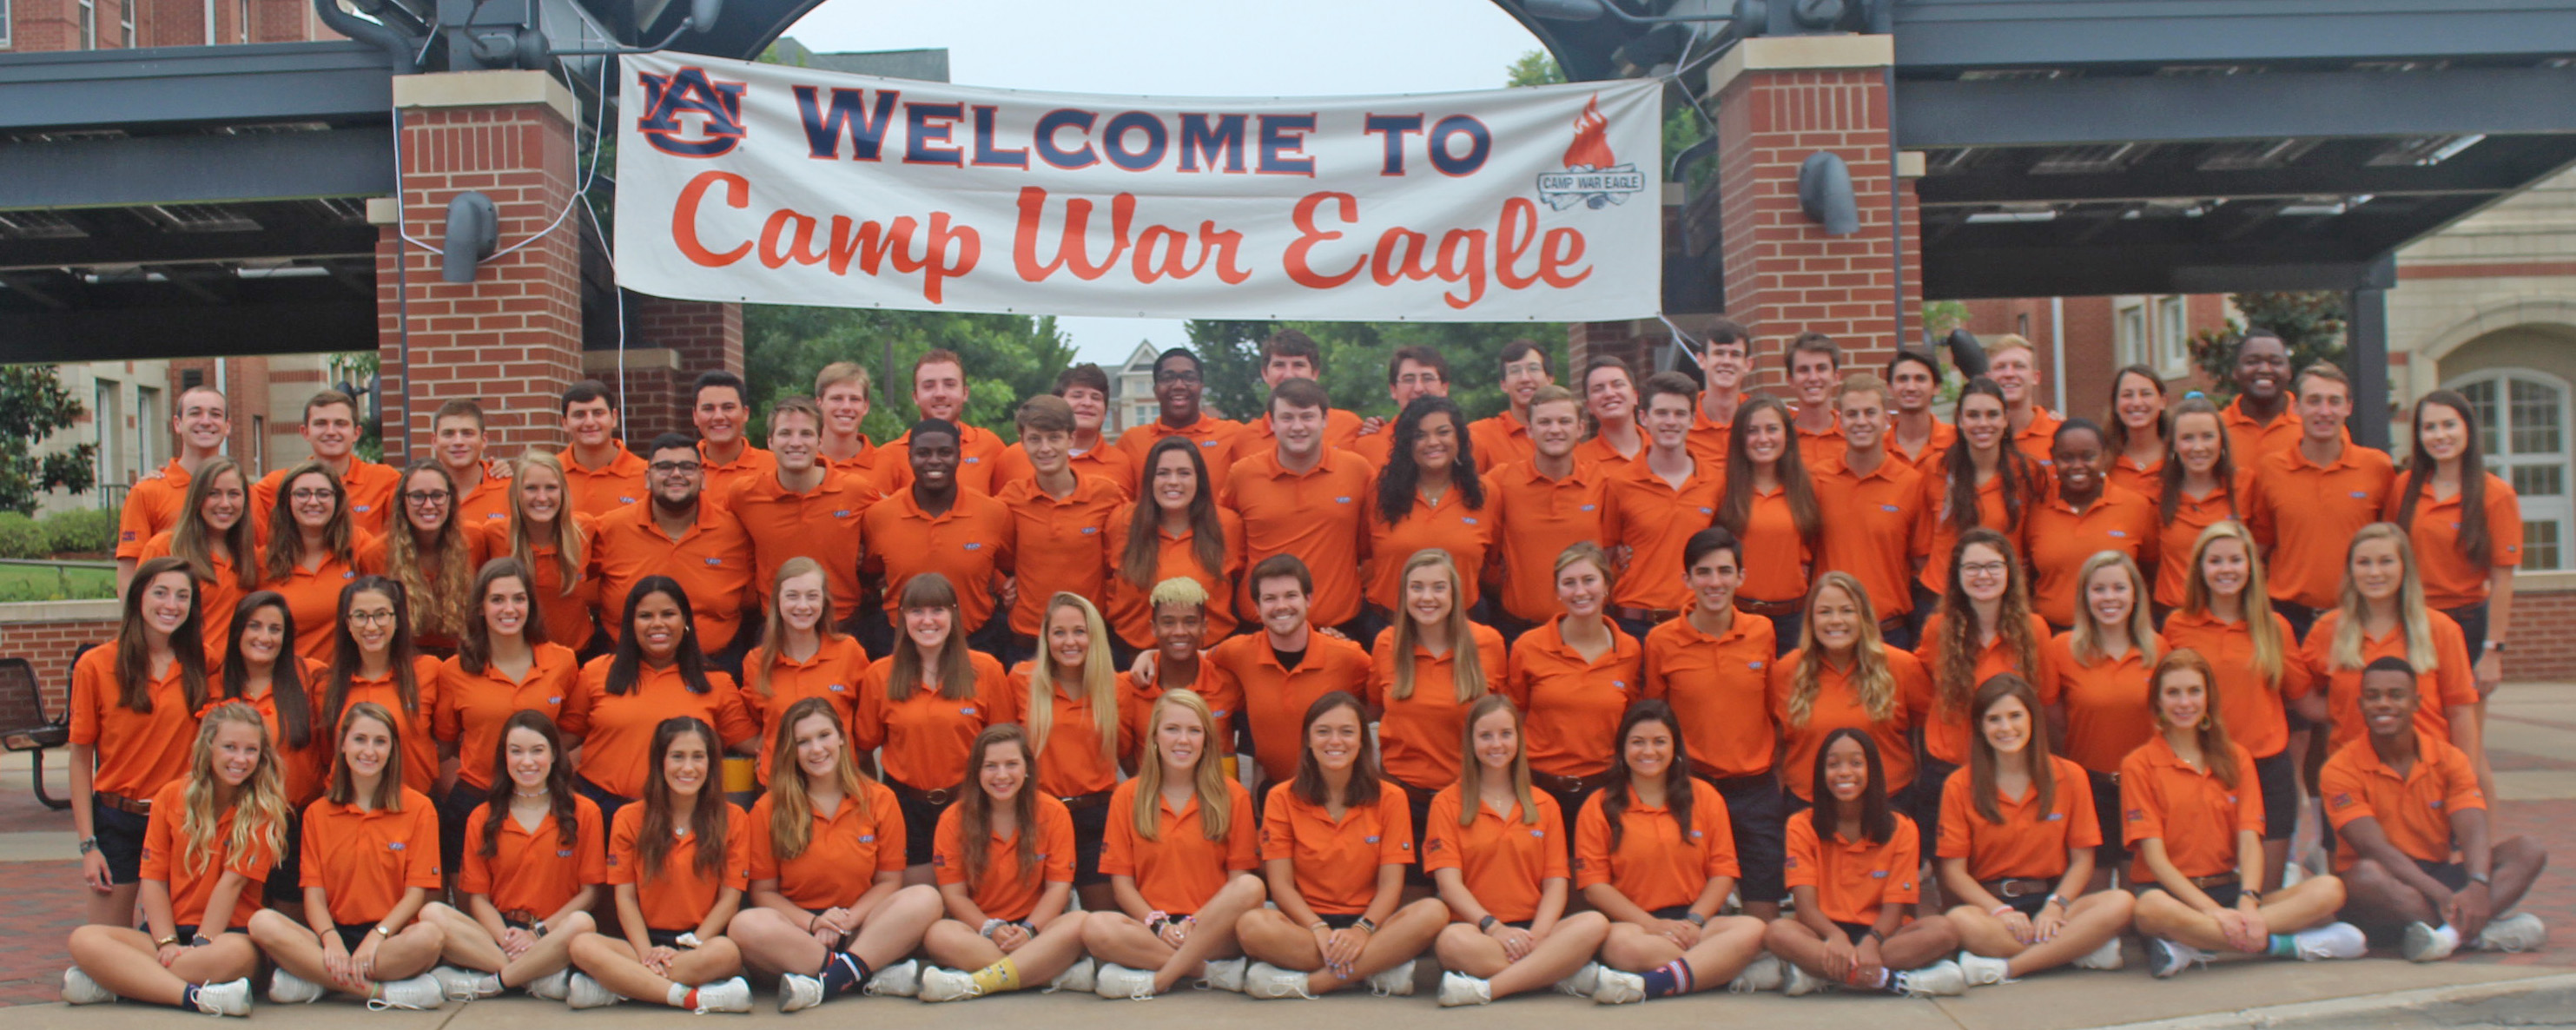 Large group of Camp War Eagle Counselors in front of Welcome to Camp War Eagle sign